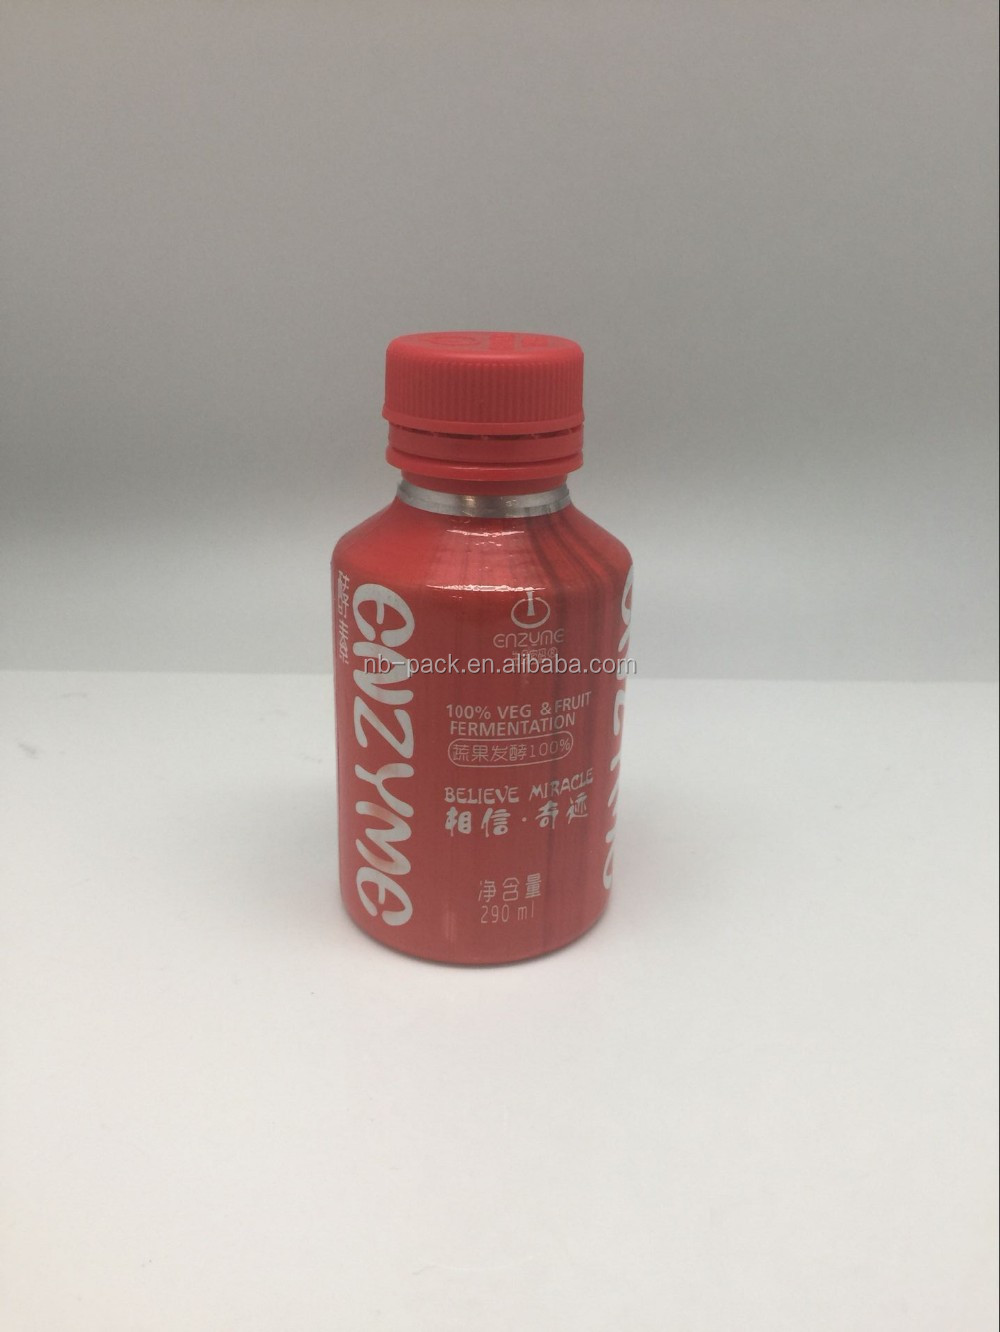 Wholesale mini bottles of champagne with food coating inside